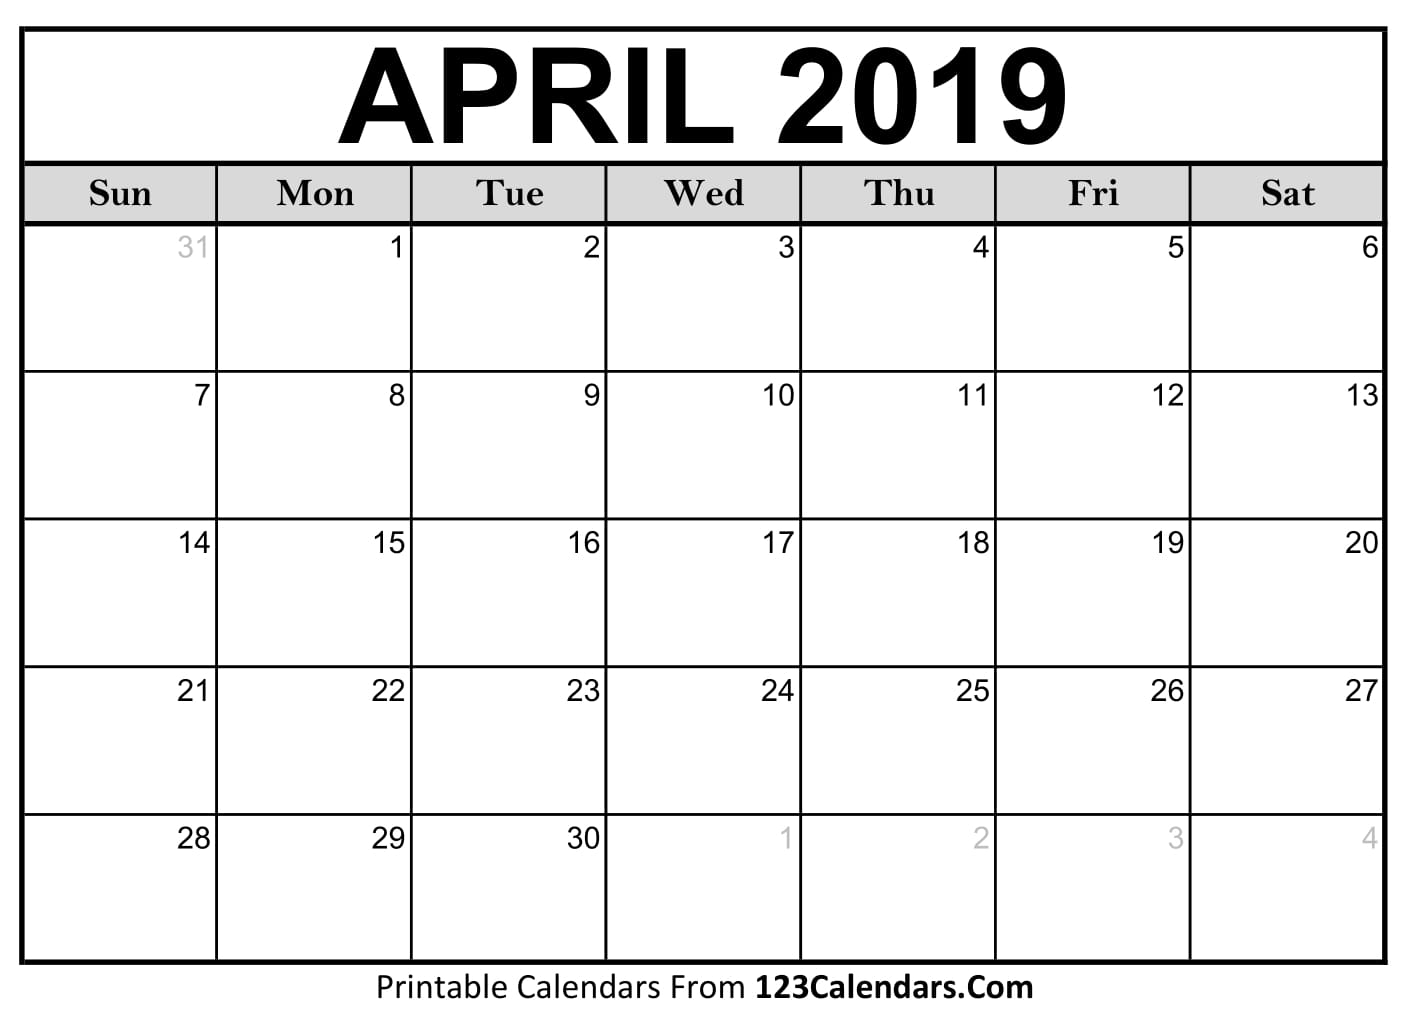 Calendar For April Printable : Free april calendar printable template source